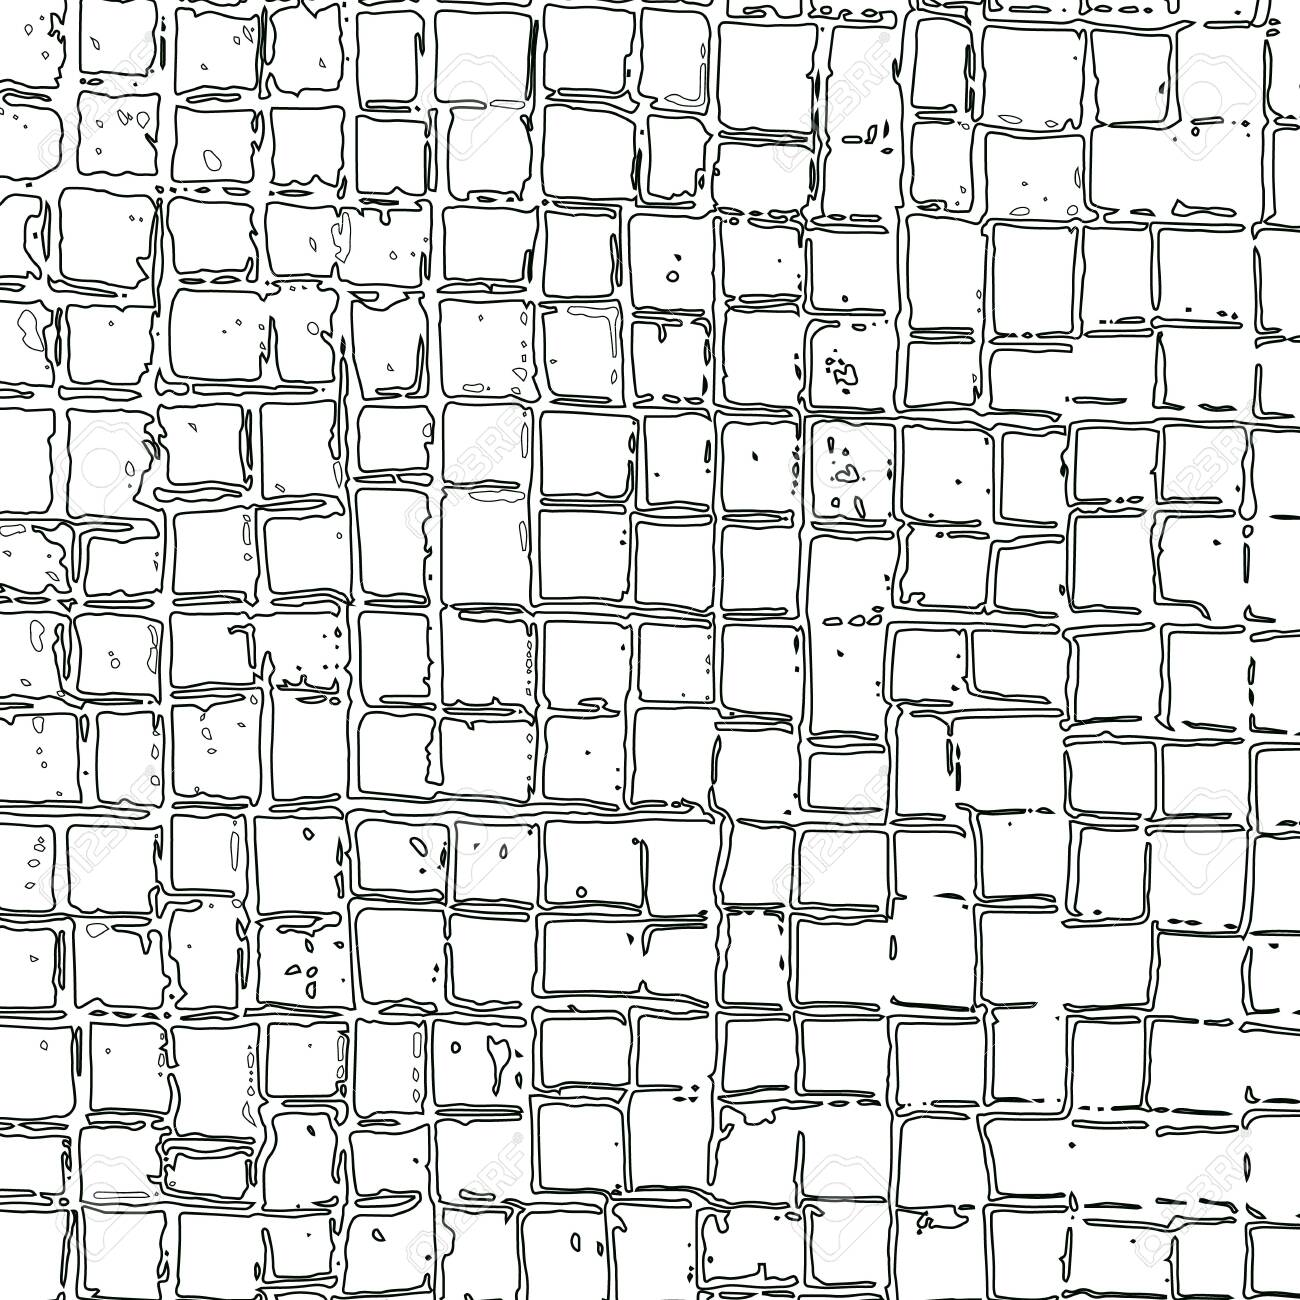 Abstract grid of repeating outline squares of different sizes and distances between cells. Vector maze. Illustration with hand-drawn grid squares for background, game, animation, web, print, ceramics, T shirt. - 140444080